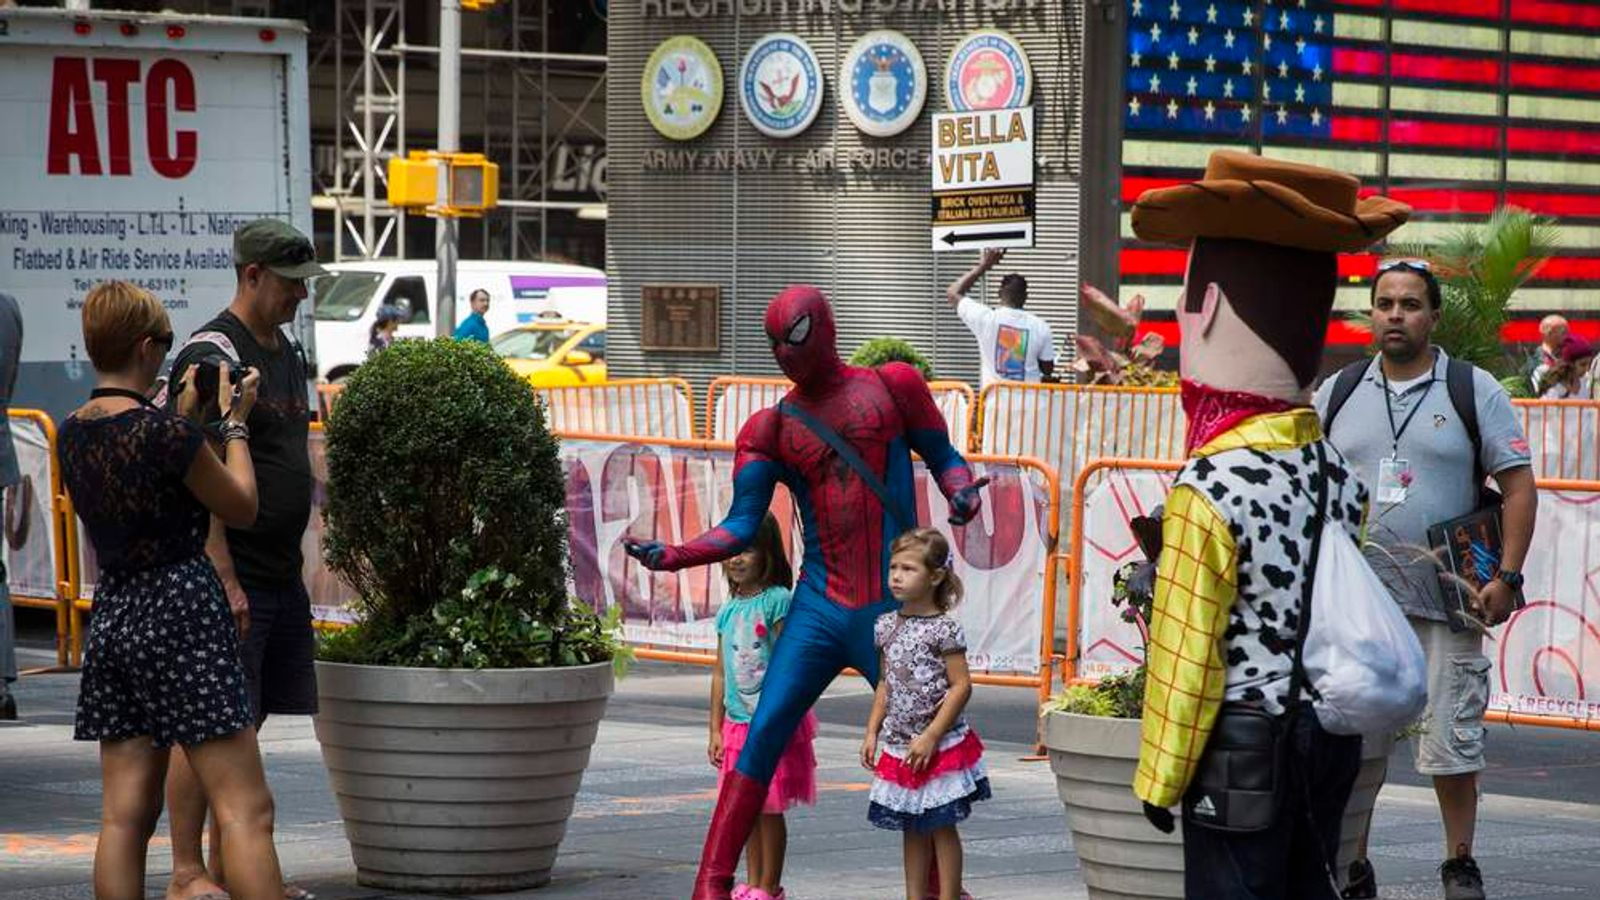 A person dressed in a Spiderman costume stands with children in the Times Square region of New York